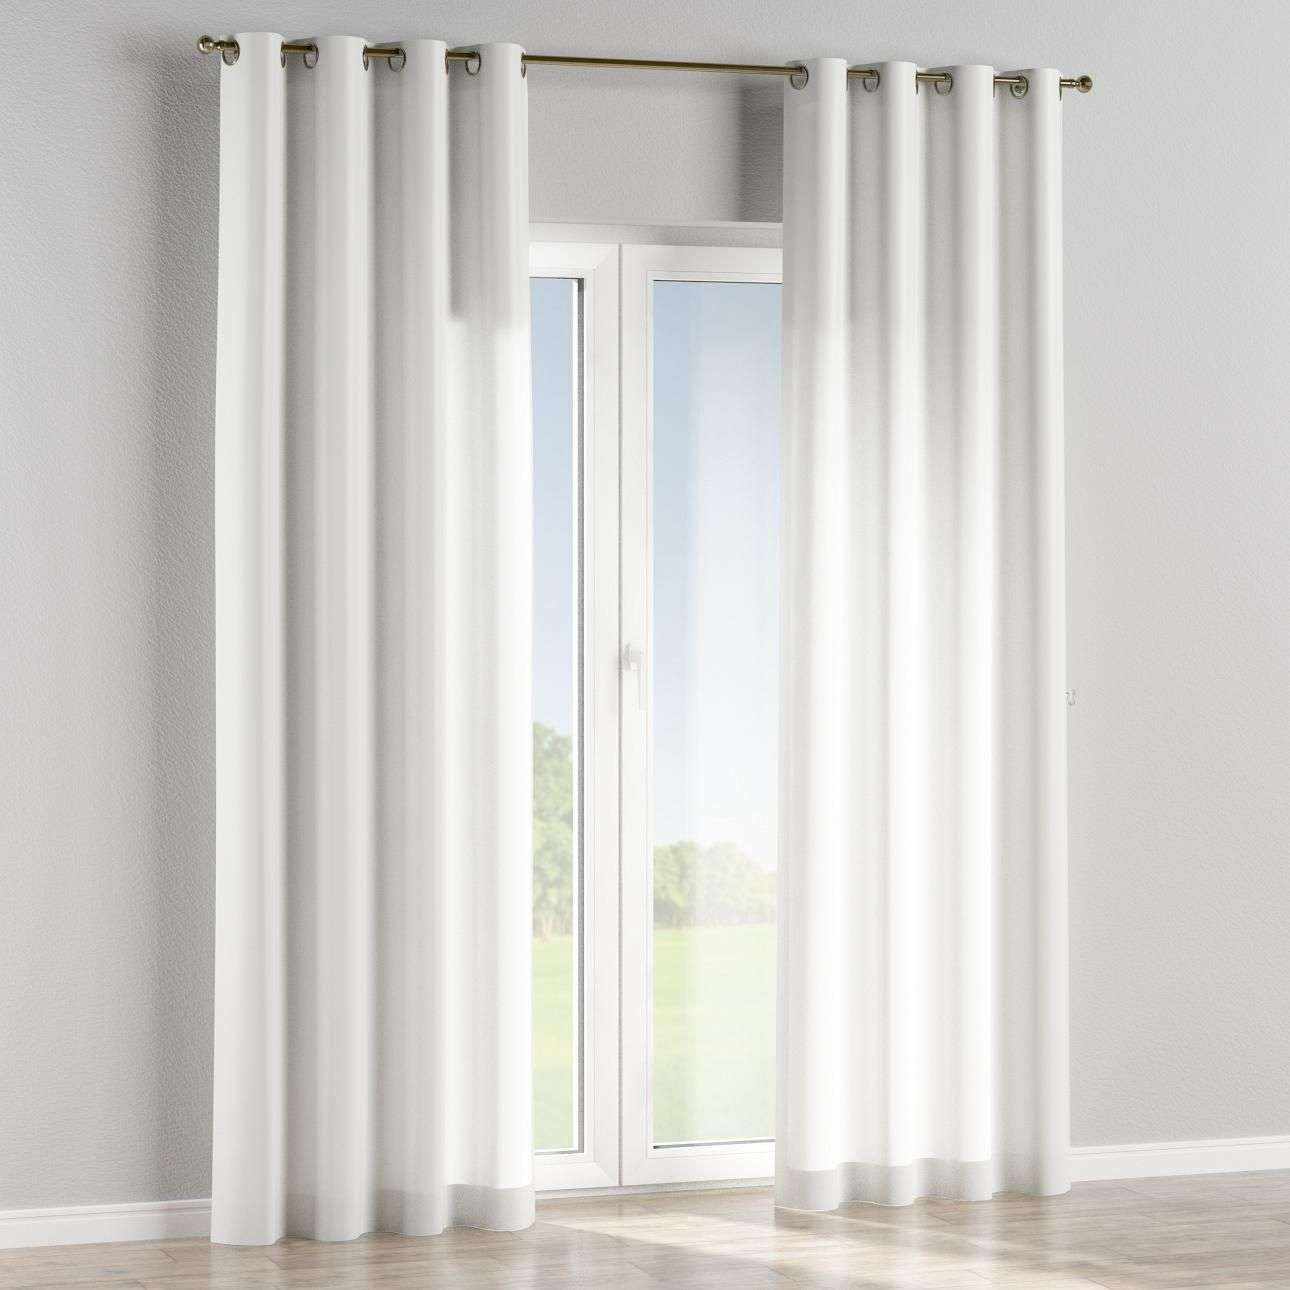 Eyelet lined curtains in collection Norge, fabric: 140-86